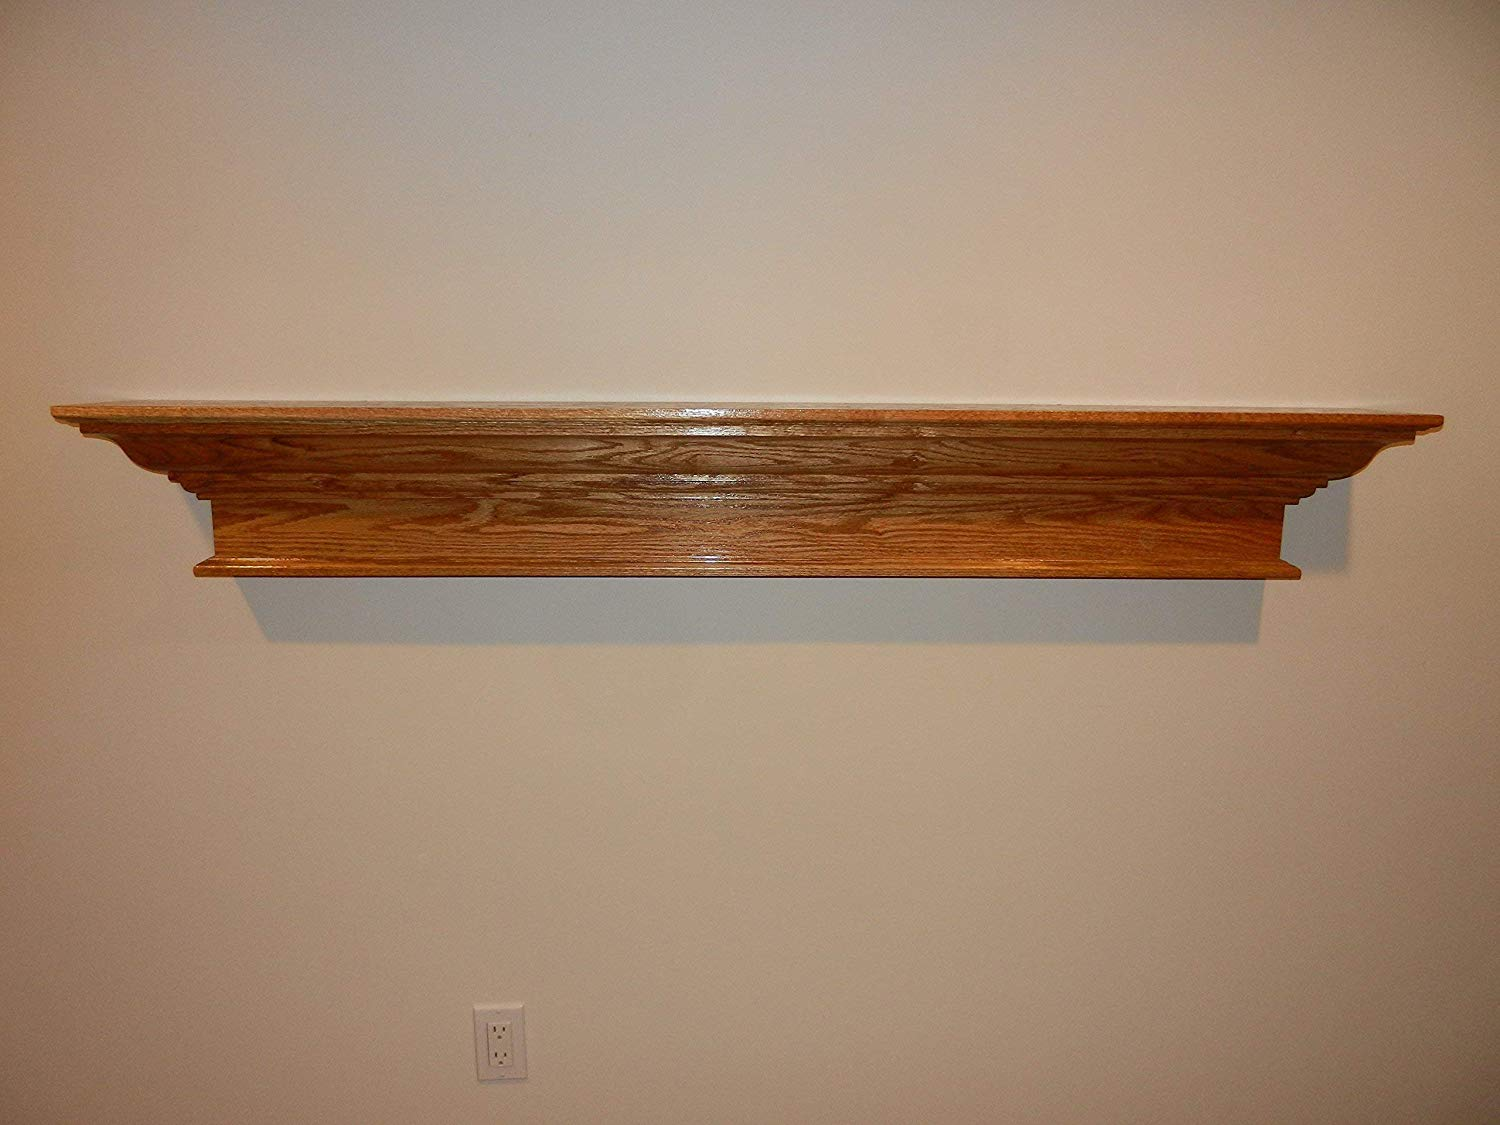 red oak contemporary wood floating shelf fireplace for sky box mantel mantle handmade build shoe rack chunky white shelves closet drawer system kitchen prep cart dvd player